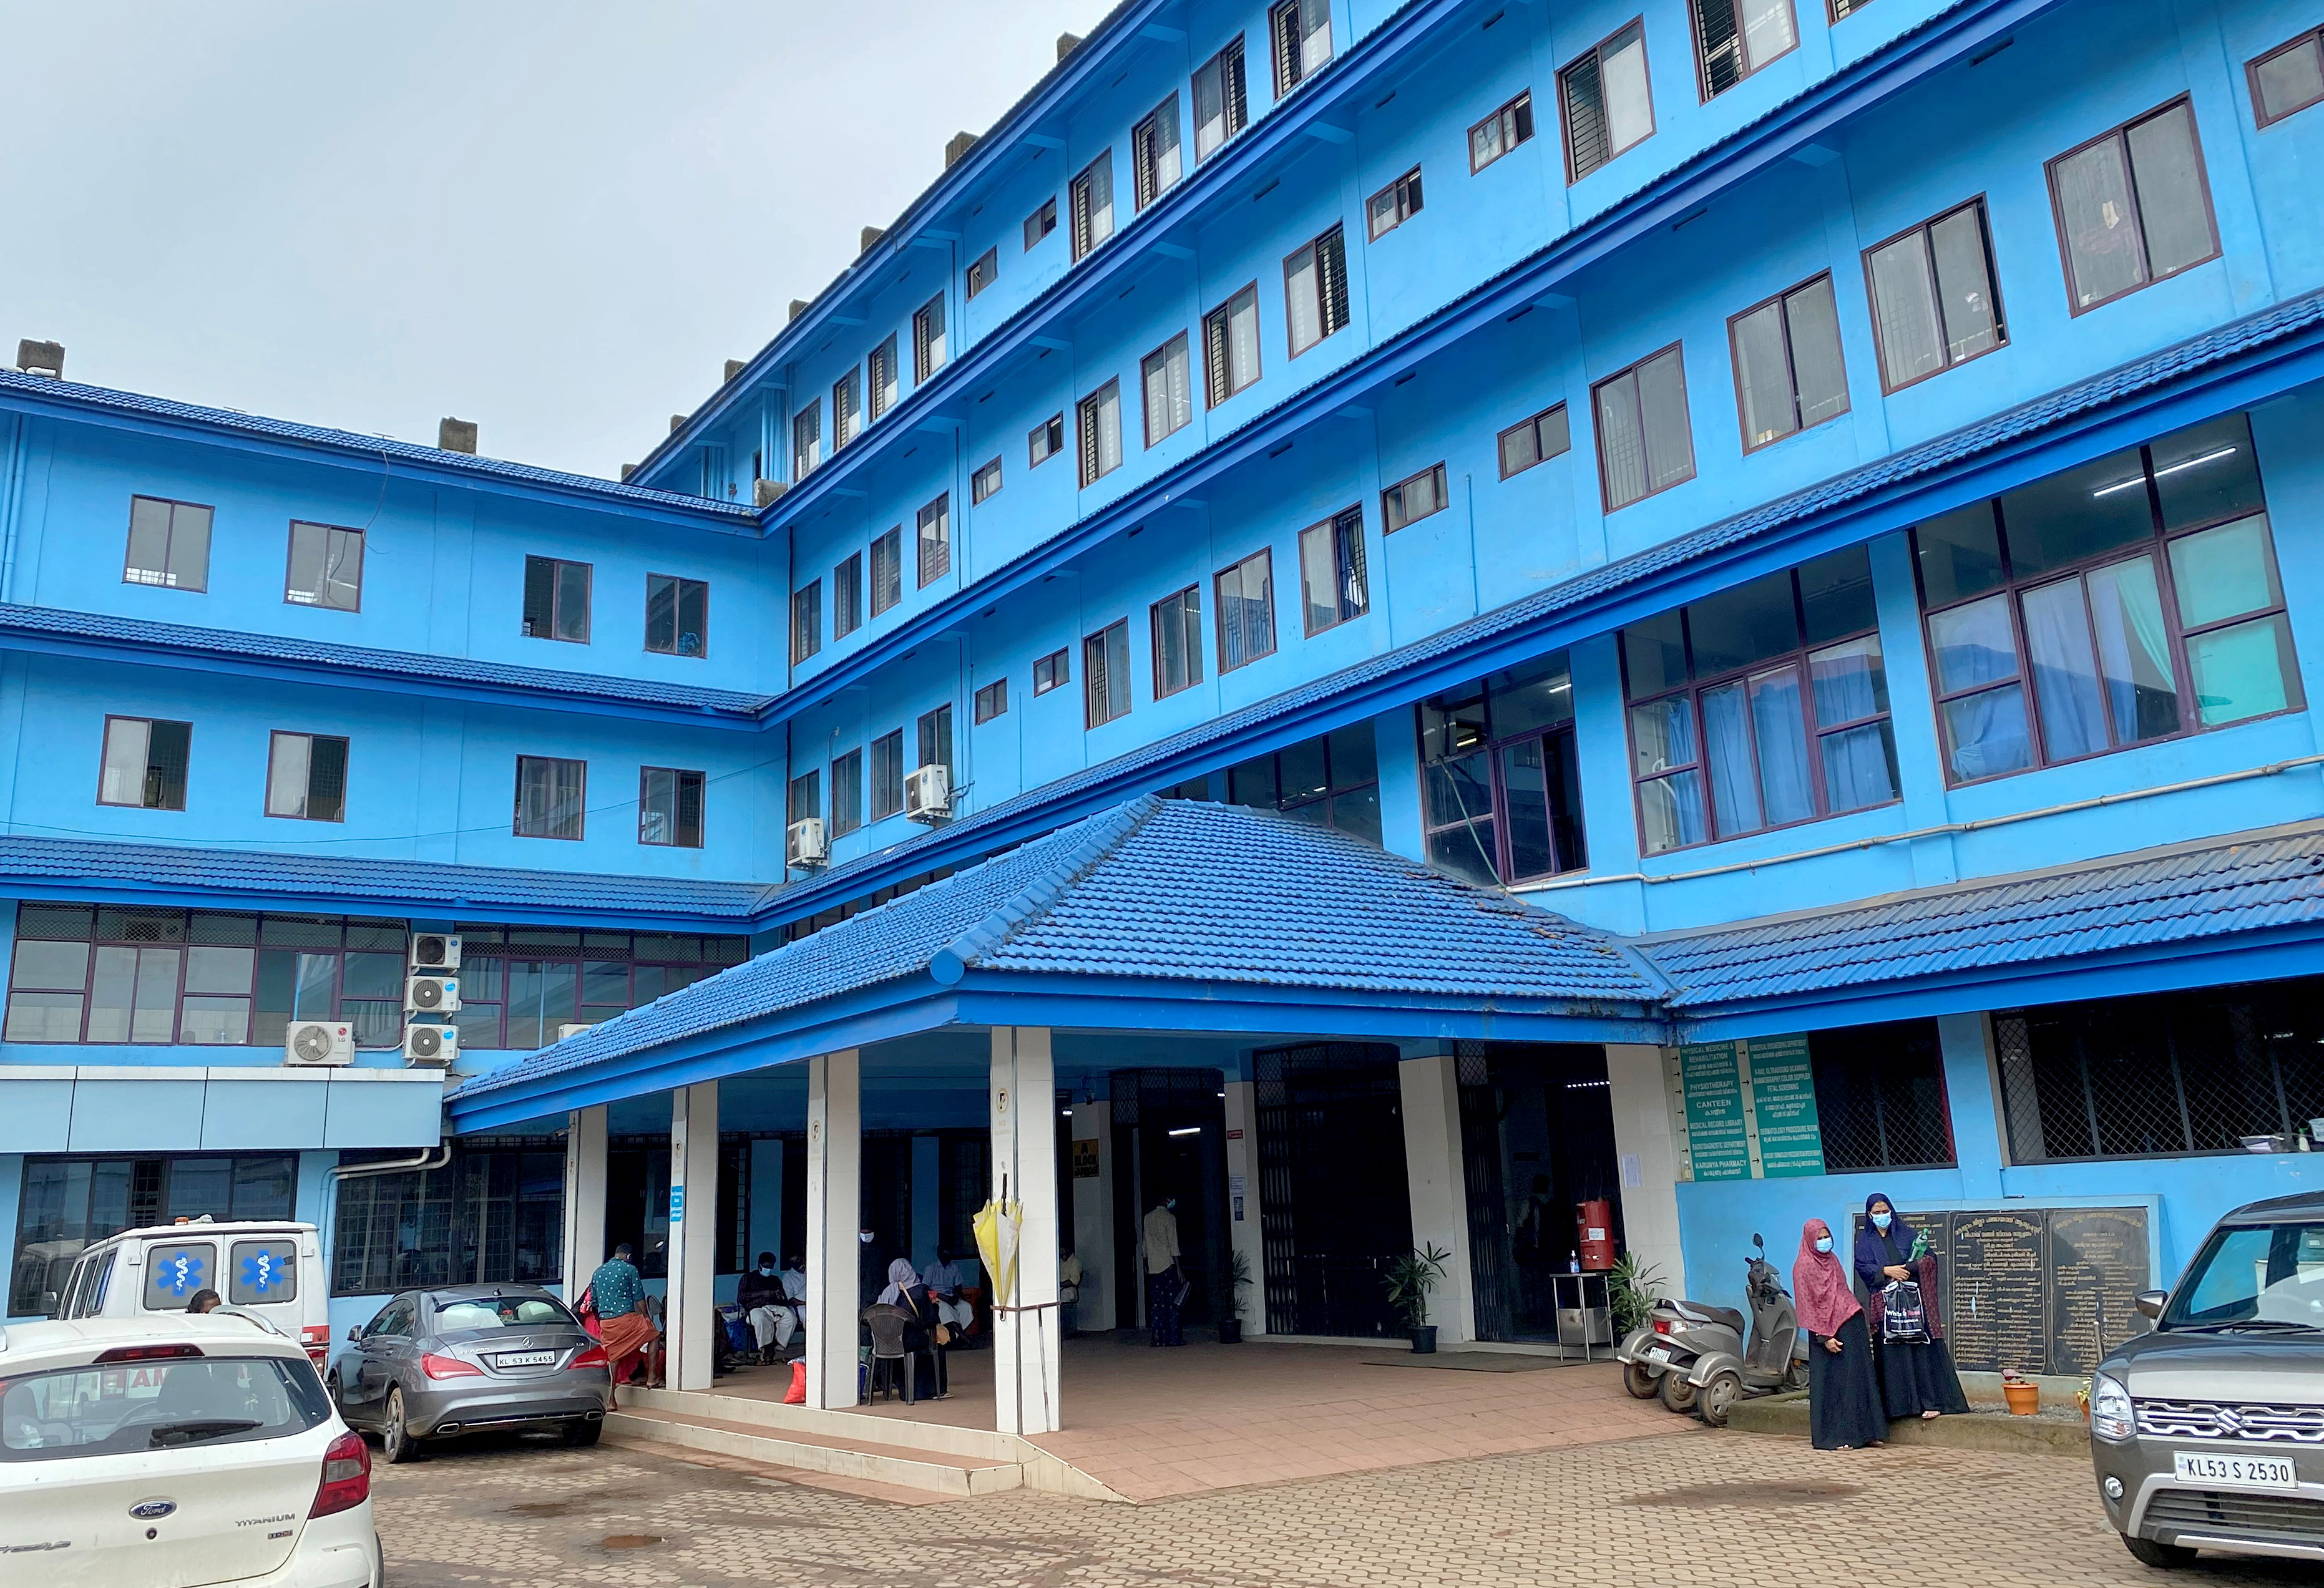 A general view of the Government Medical College Hospital in Manjeri, in the Malappuram district of the southern state of Kerala, India. August 18, 2021. Picture taken August 18, 2021. REUTERS/Krishna N. Das